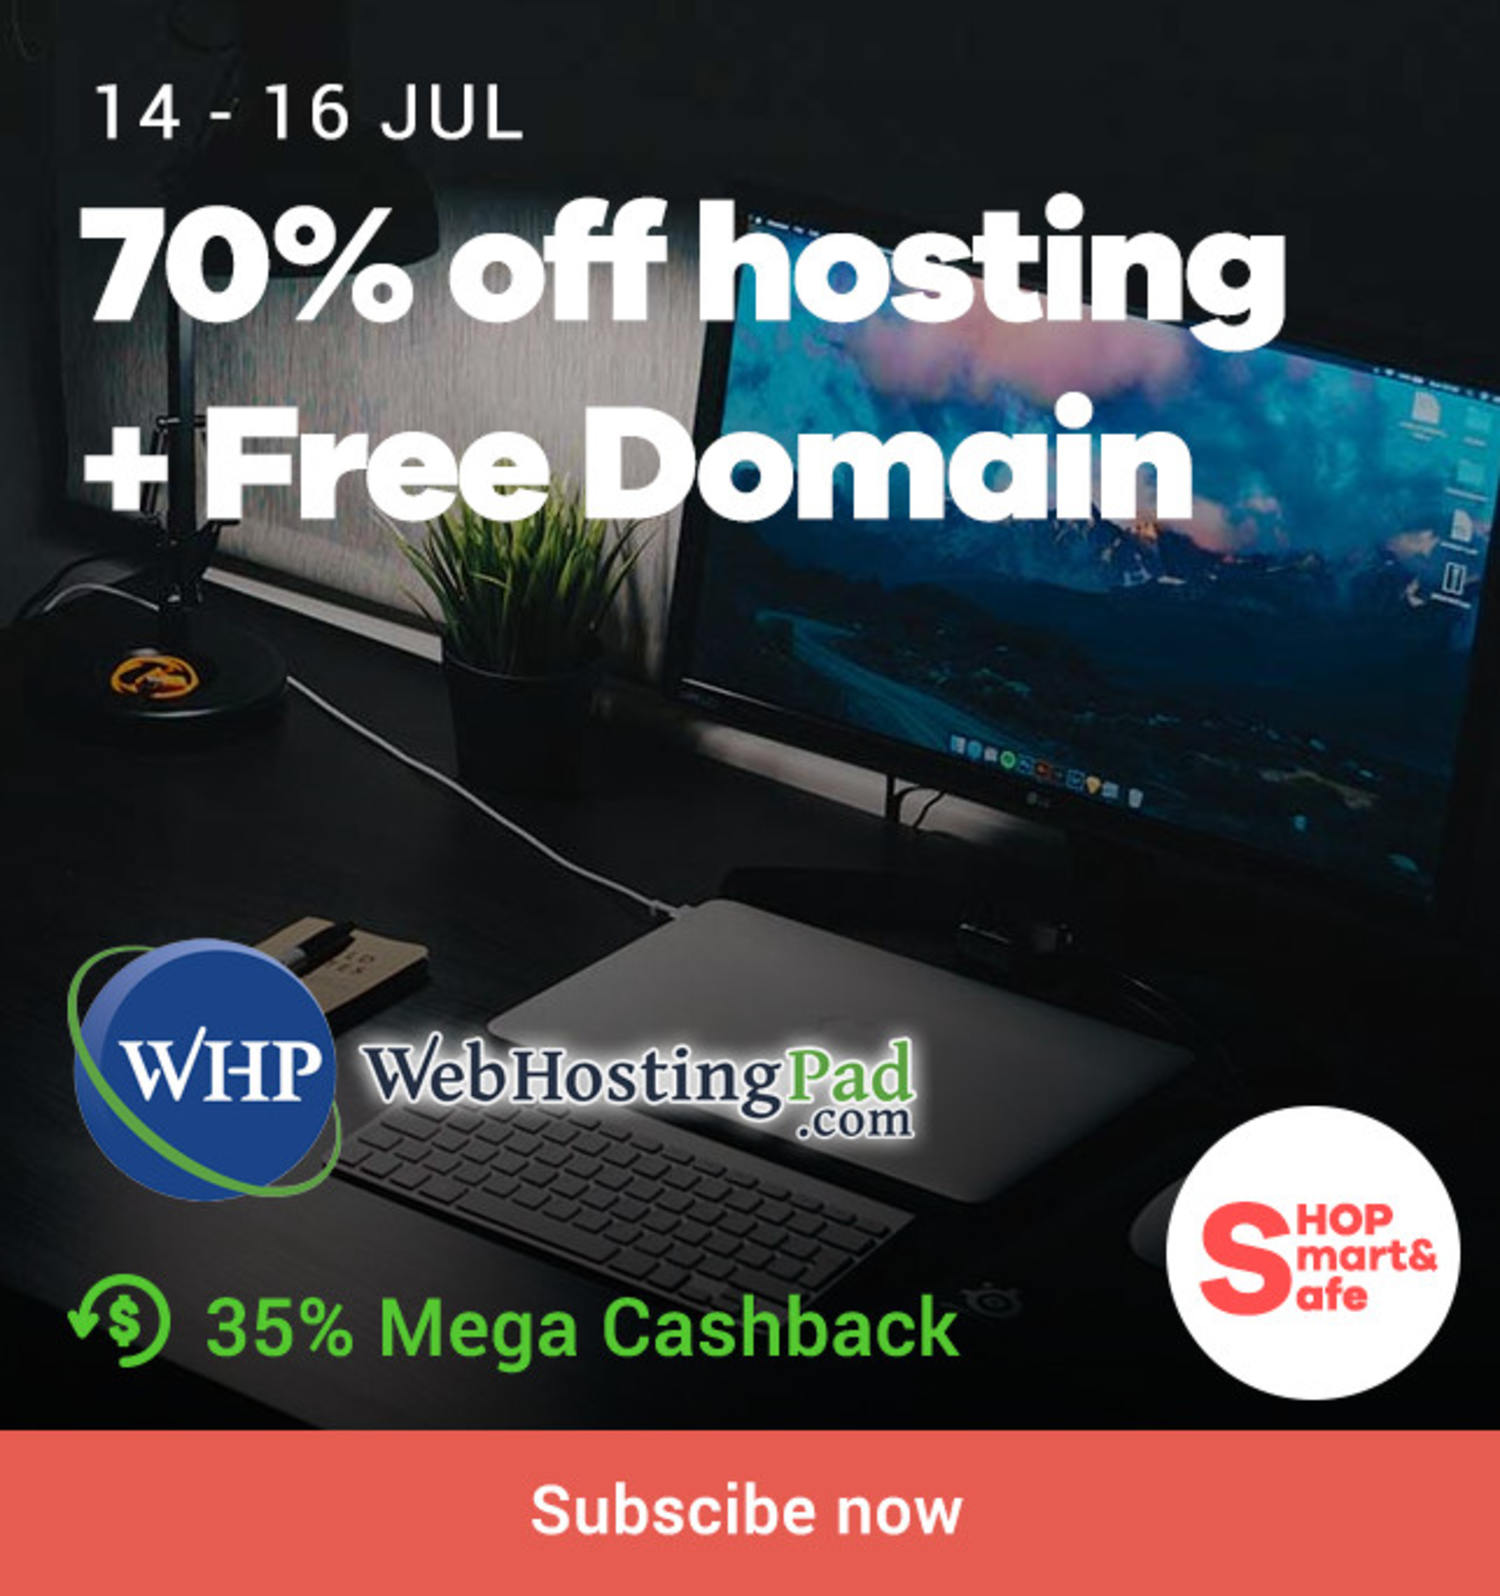 Web Hosting Pad: 70% off Hosting + Free Domain